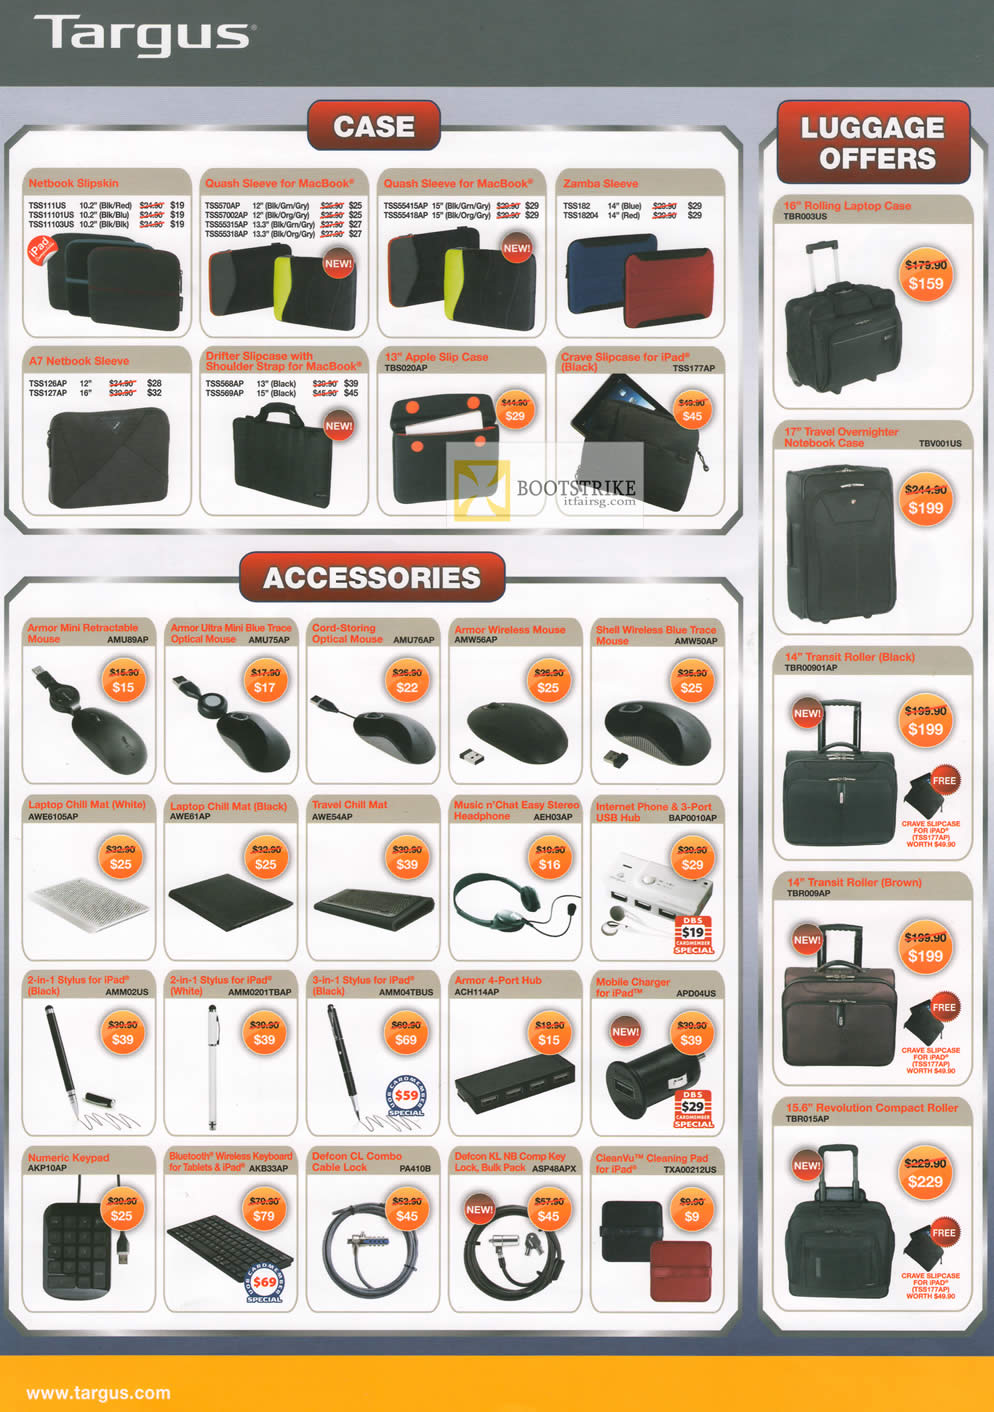 COMEX 2012 price list image brochure of Targus Case Netbook Slipskin, Sleeve, Luggage, Accessories Chill Mat, Cable Lock, Keypad